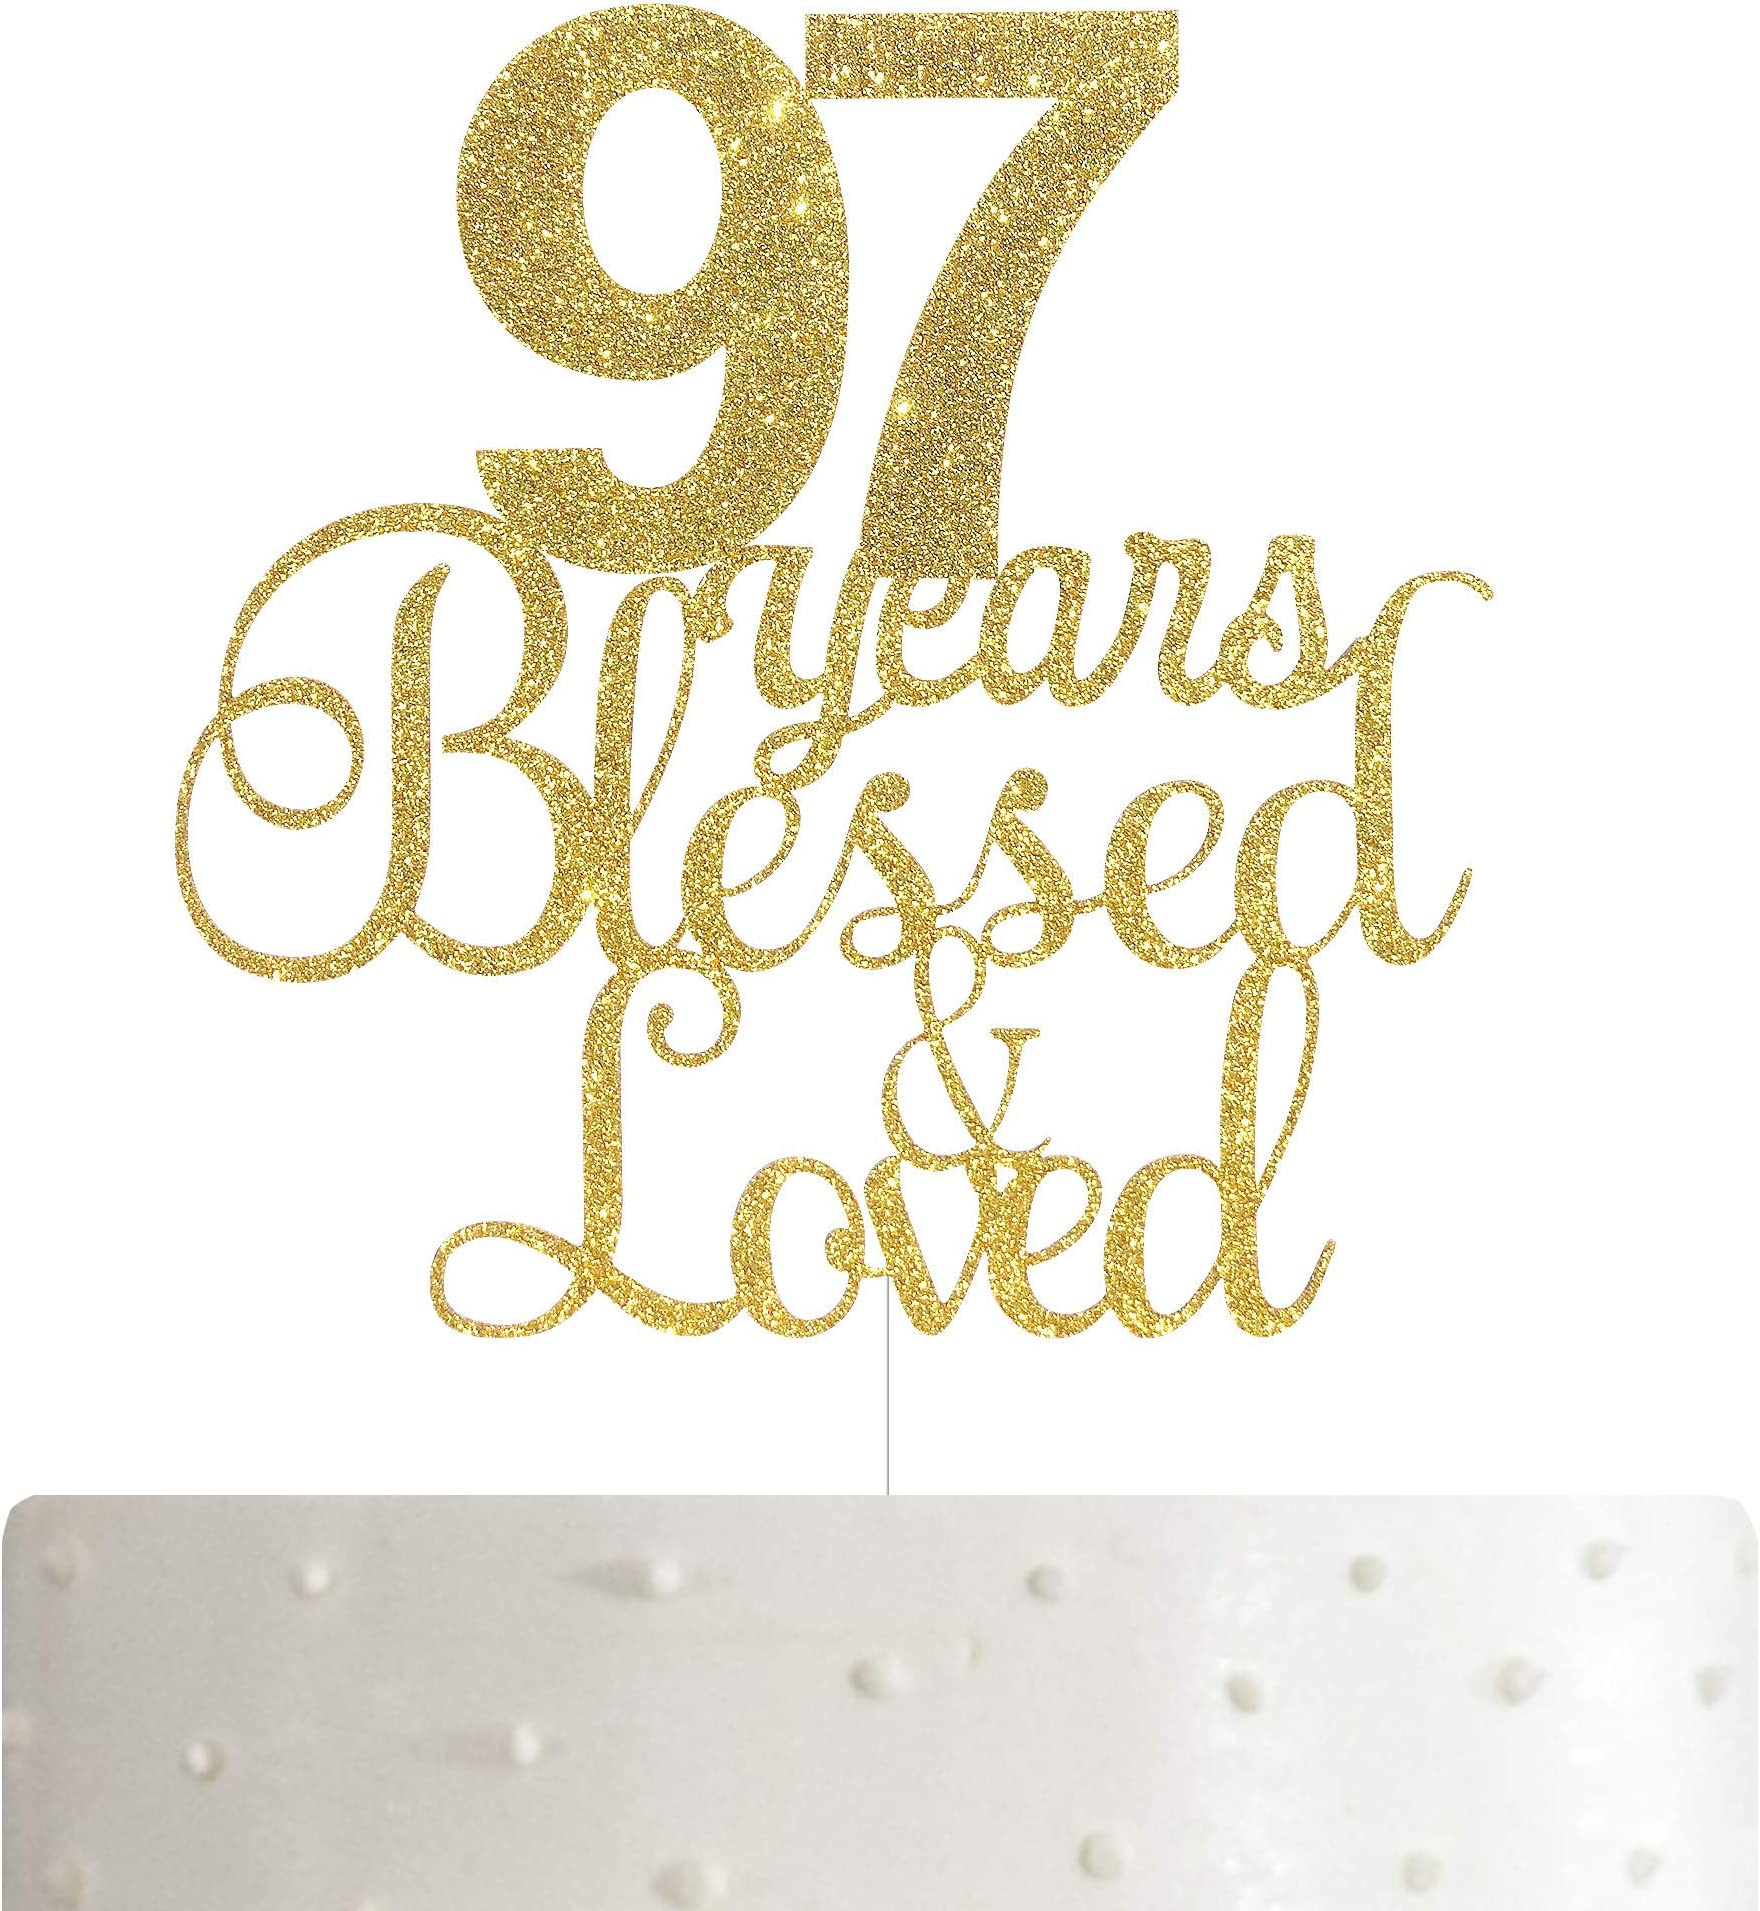 ALPHA K 75th BirthdayAnniversary Cake Topper \u2013 75 Years Blessed /& Loved Cake Topper with Gold Glitter